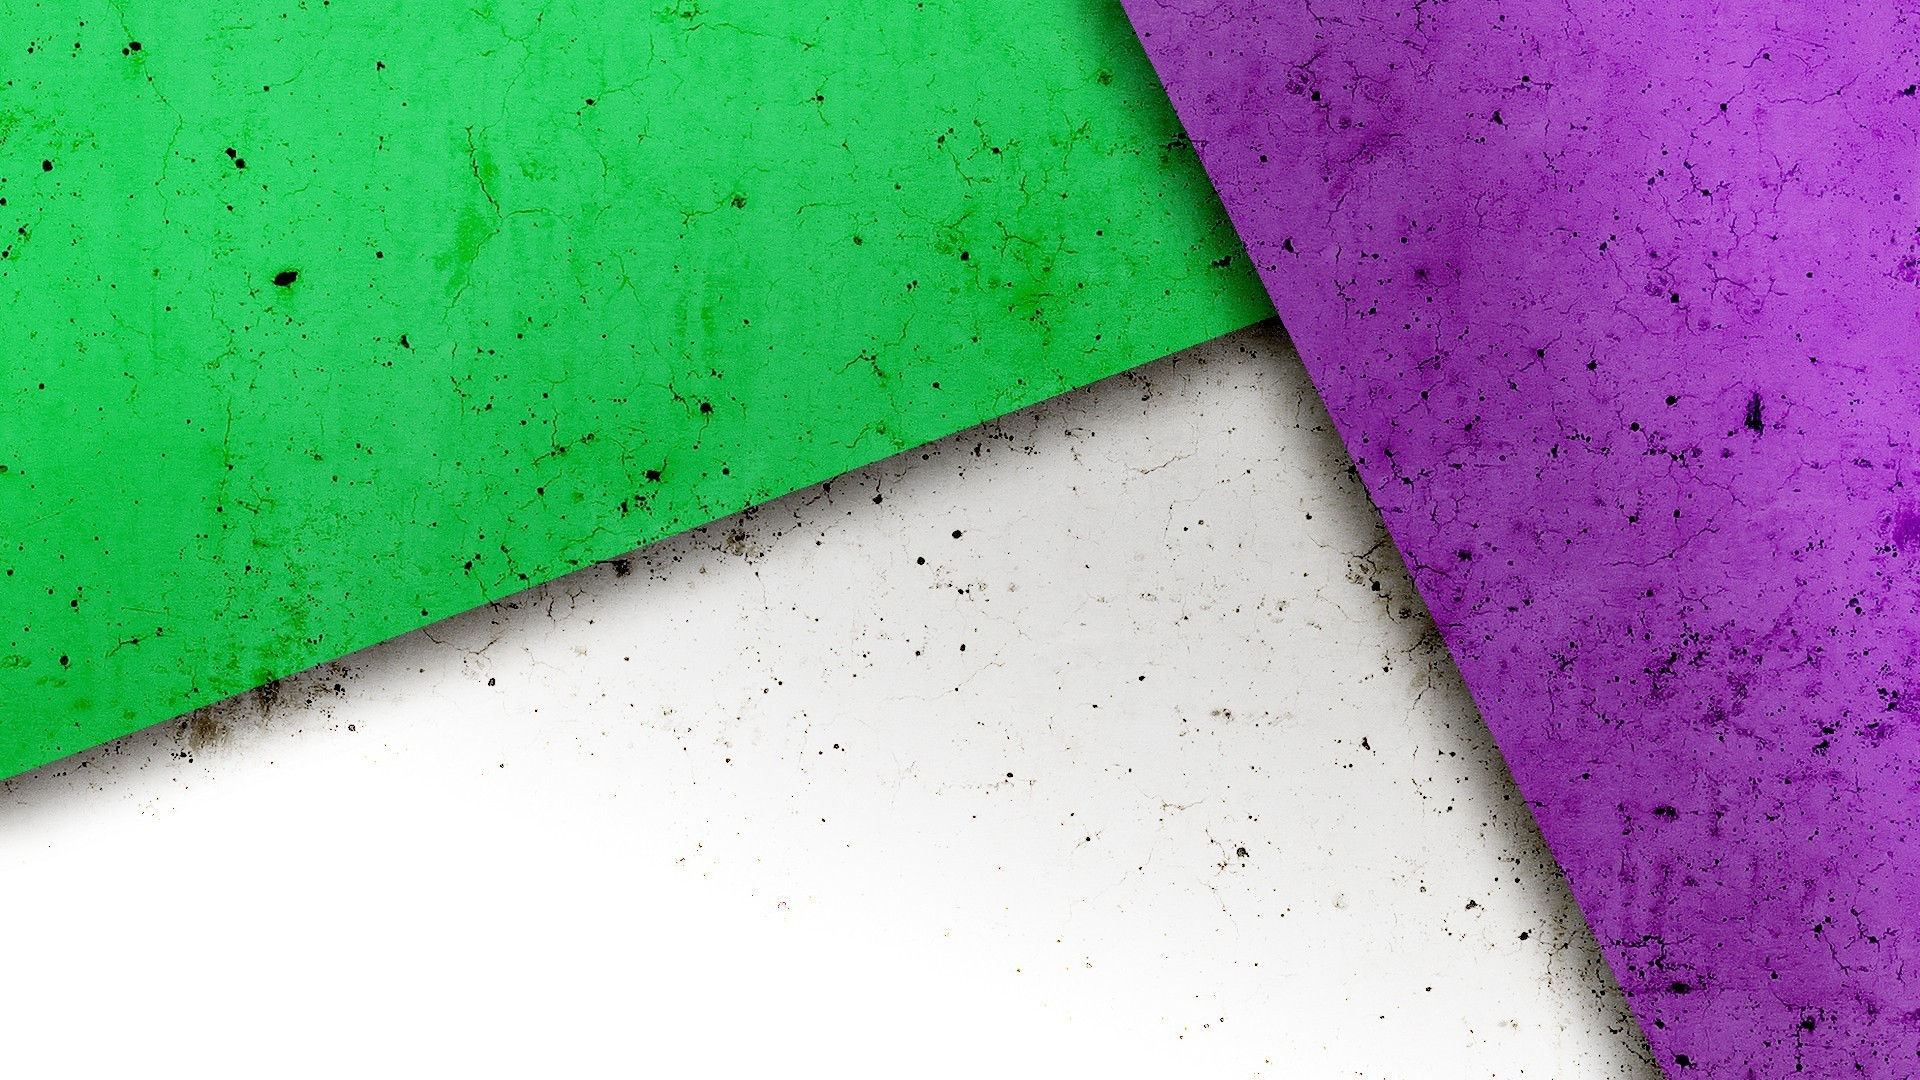 Home > Other HD Wallpapers > Green, Purple, White, Simple Background